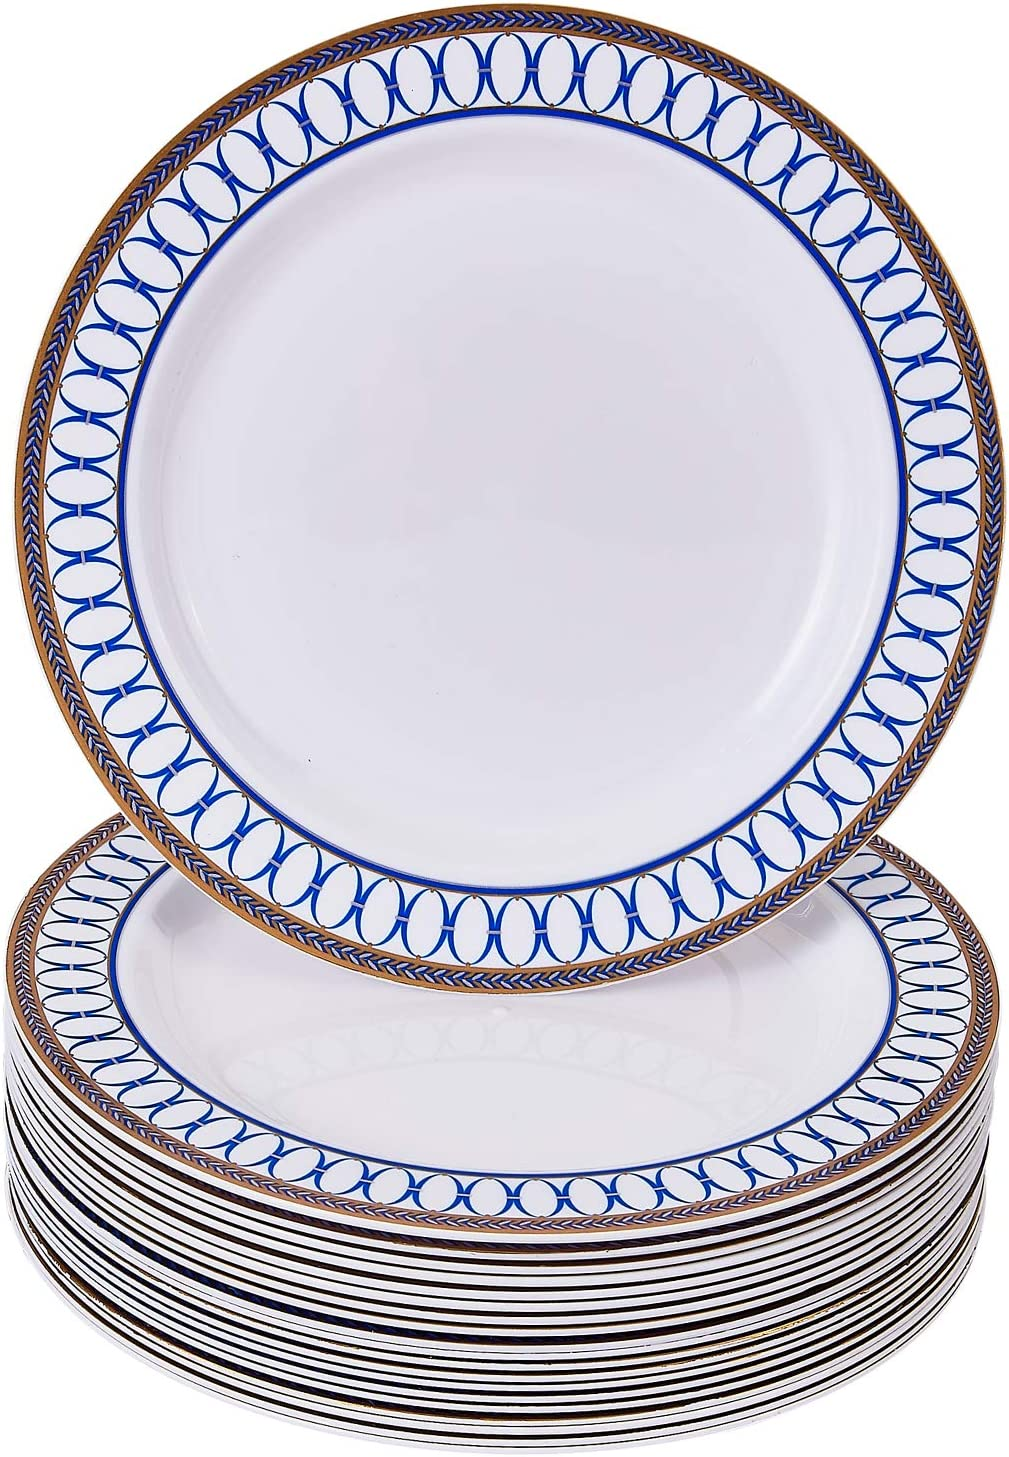 Silver Quantity limited Credence Spoons Collections Disposable Plates Fine Elegant L China